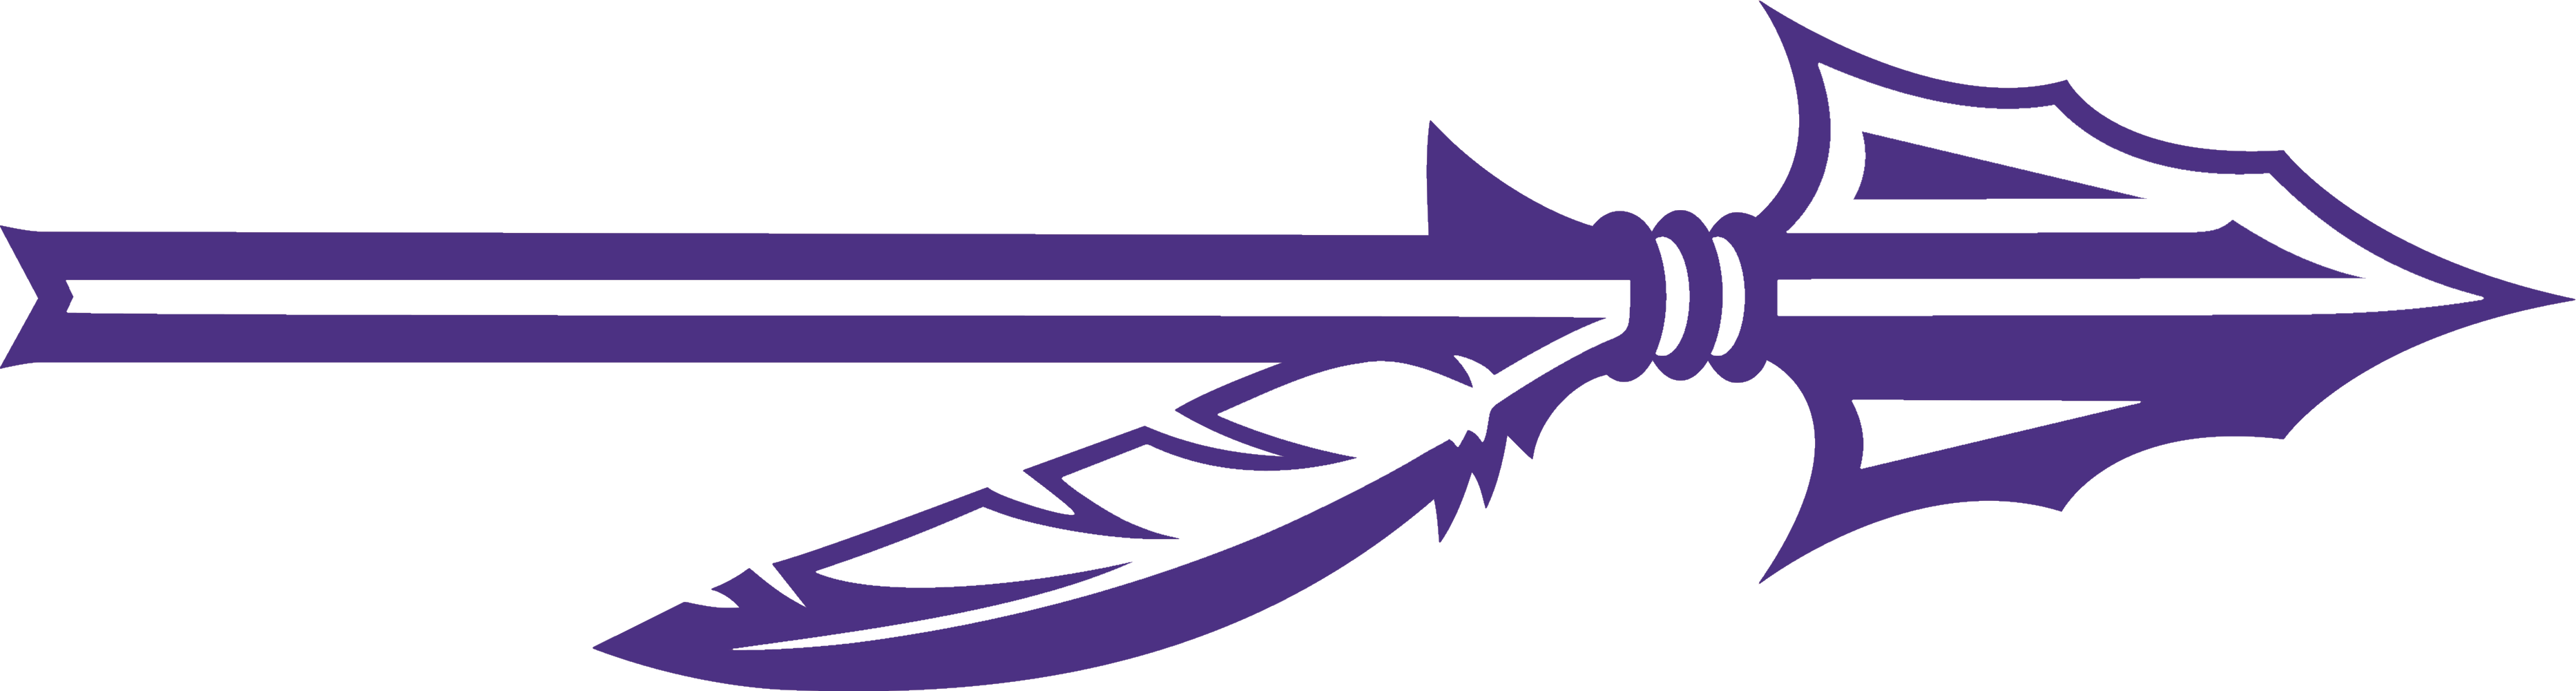 Native american spear png. Ft recovery football uniform